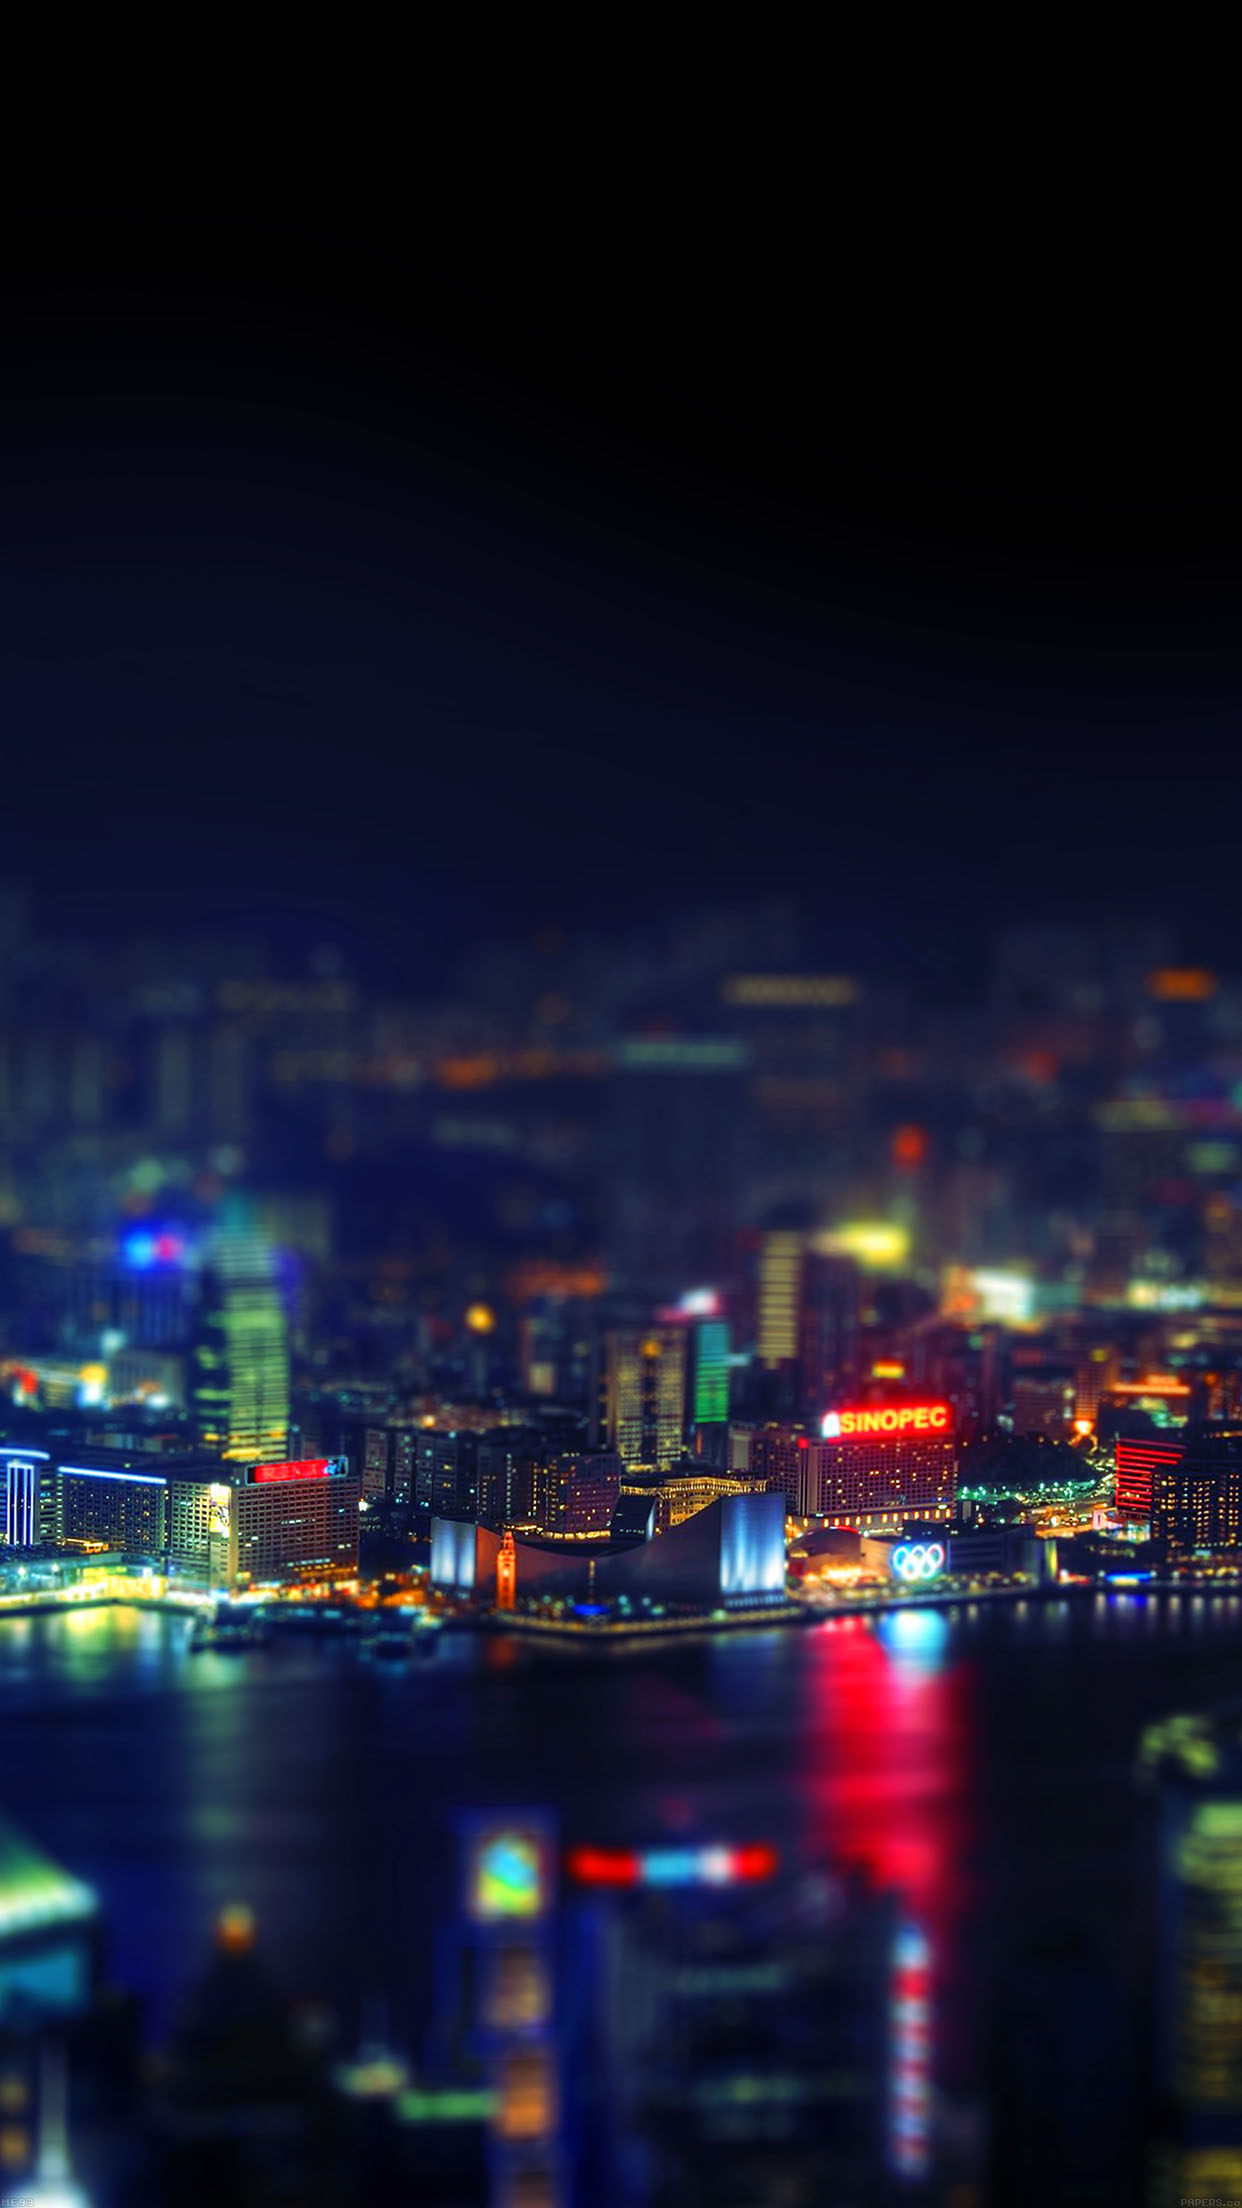 Me93 hongkong night cityscapes lights - Samsung s9 wallpaper 4k ...